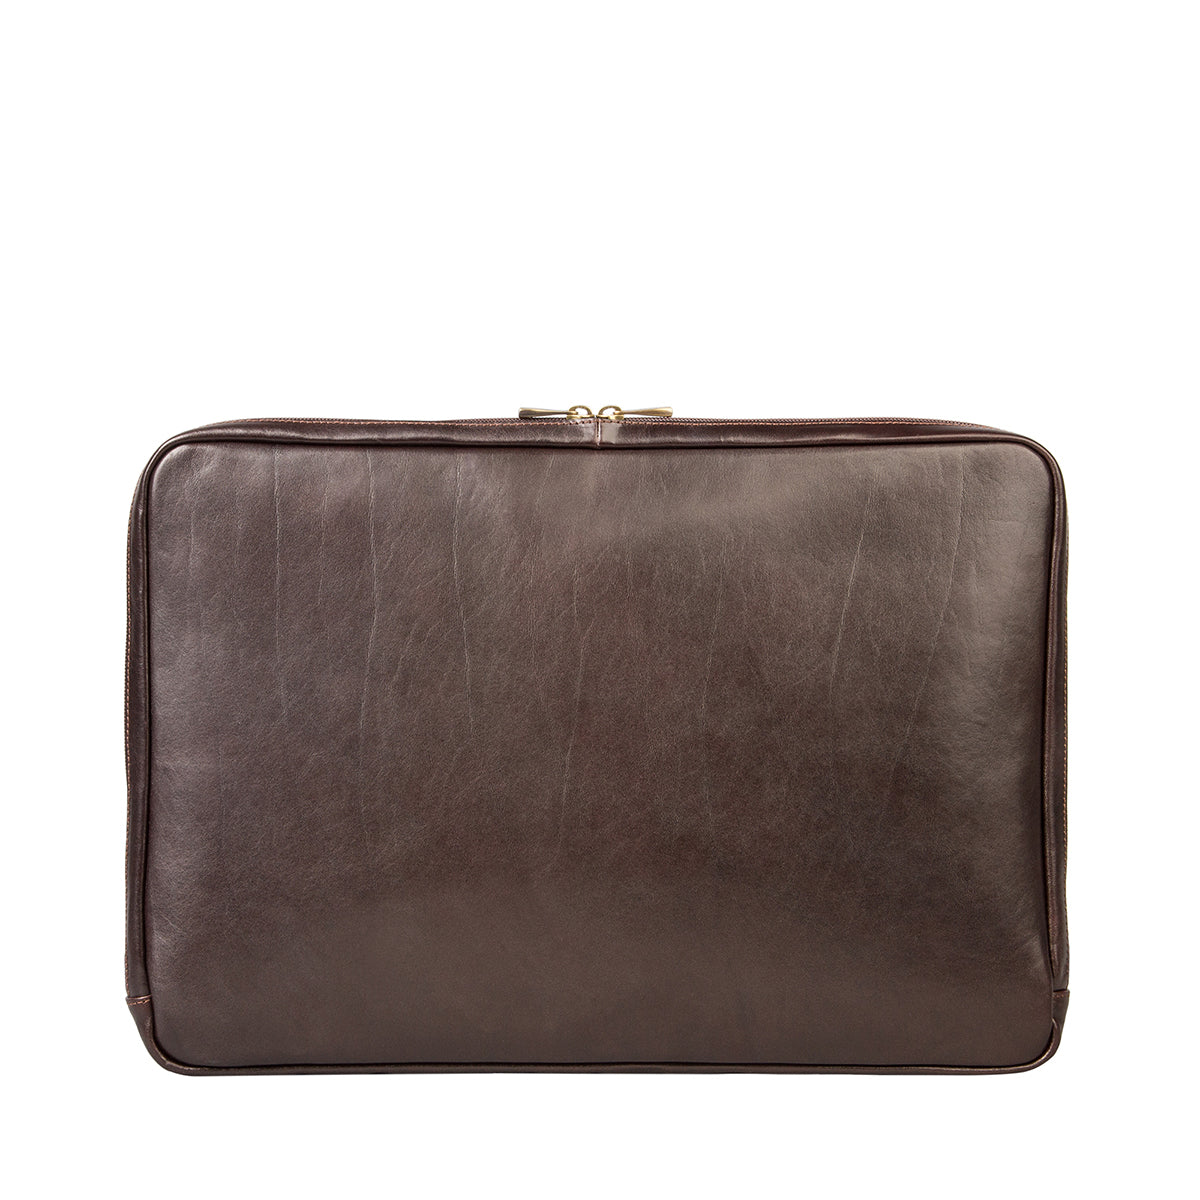 Image 3 of the 'Davoli' 17 Inch Brown Veg-Tanned Leather Laptop Bag